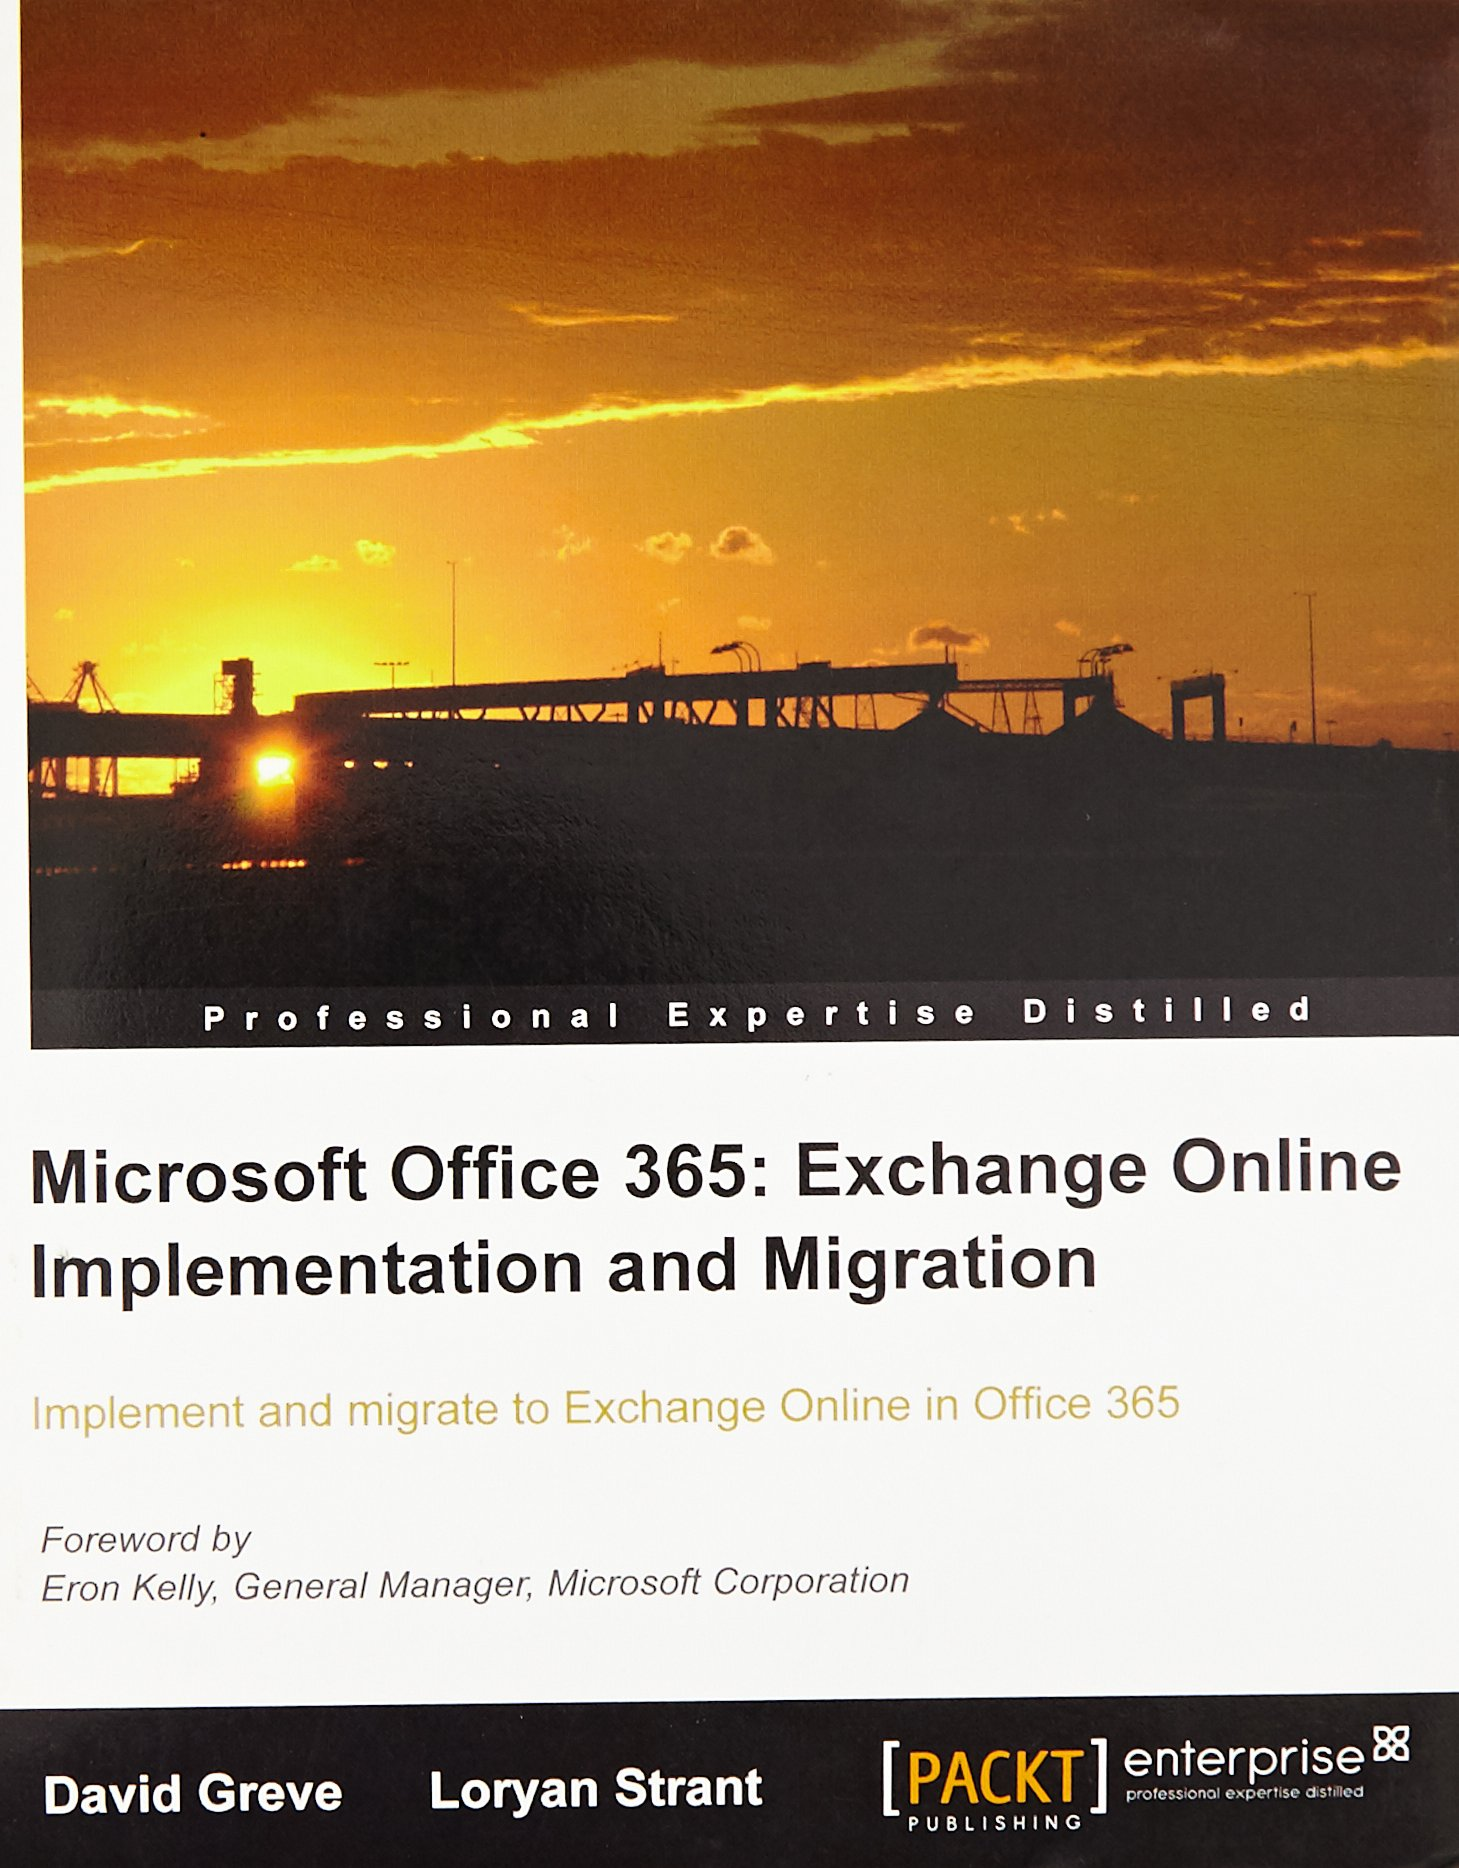 Microsoft Office 365: Exchange Online Implementation and